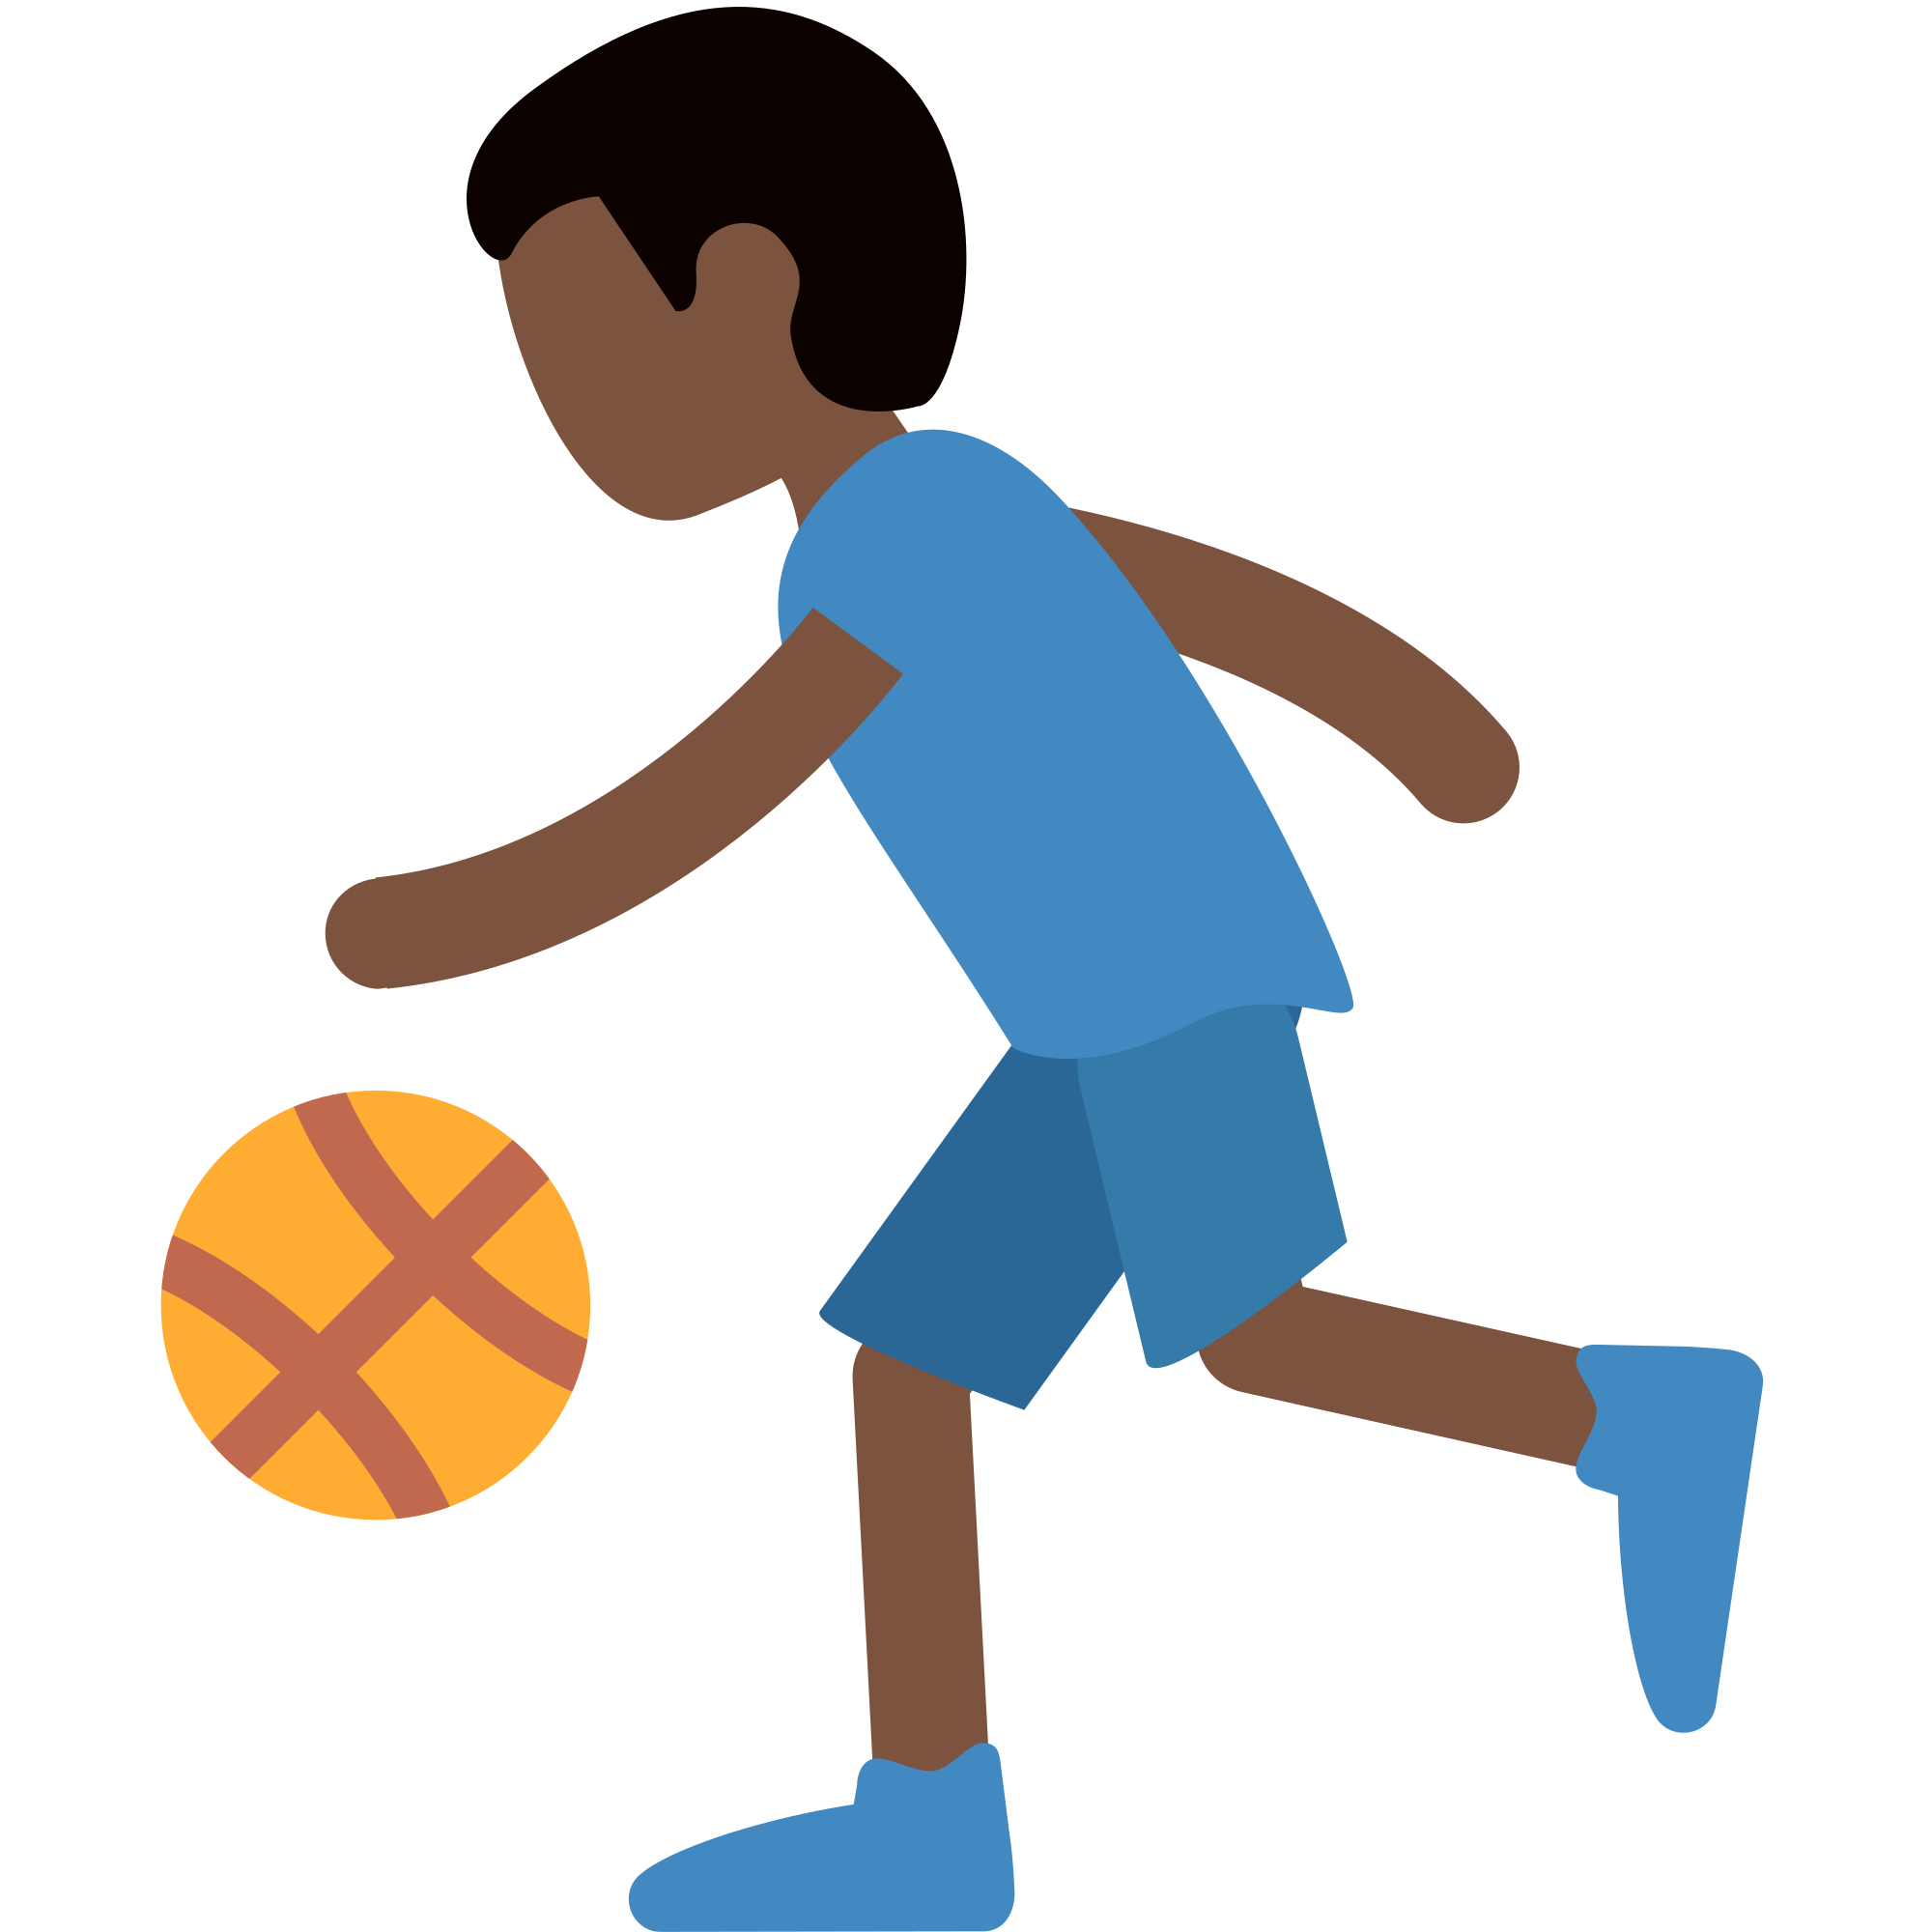 Baby basketball clipart jpg library download Collection of Playing Basketball Clipart | Buy any image and use it ... jpg library download